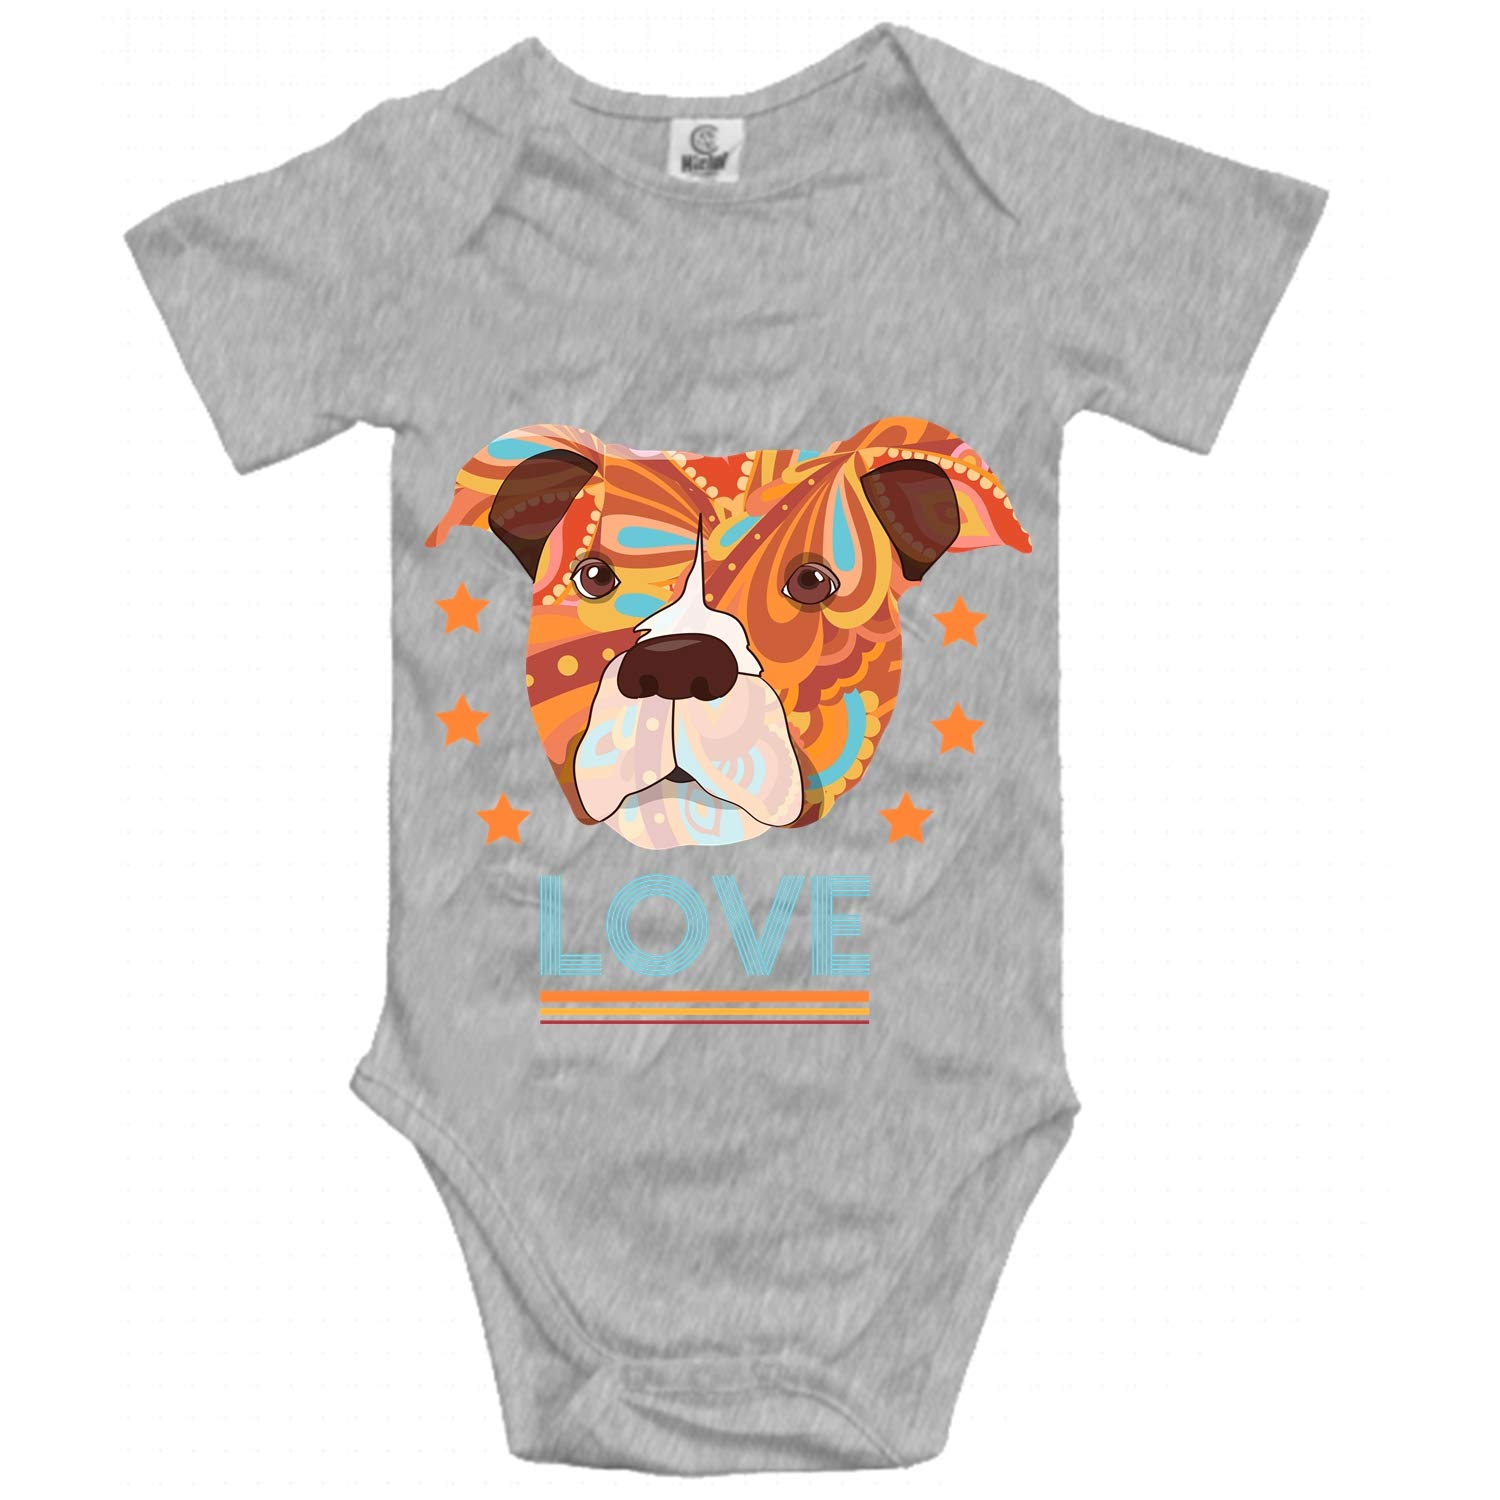 Qilrocm Baby Boy Jumpsuit Soft One-Piece Pitbull Mom Romper Short Sleeve Bodysuit for Girl